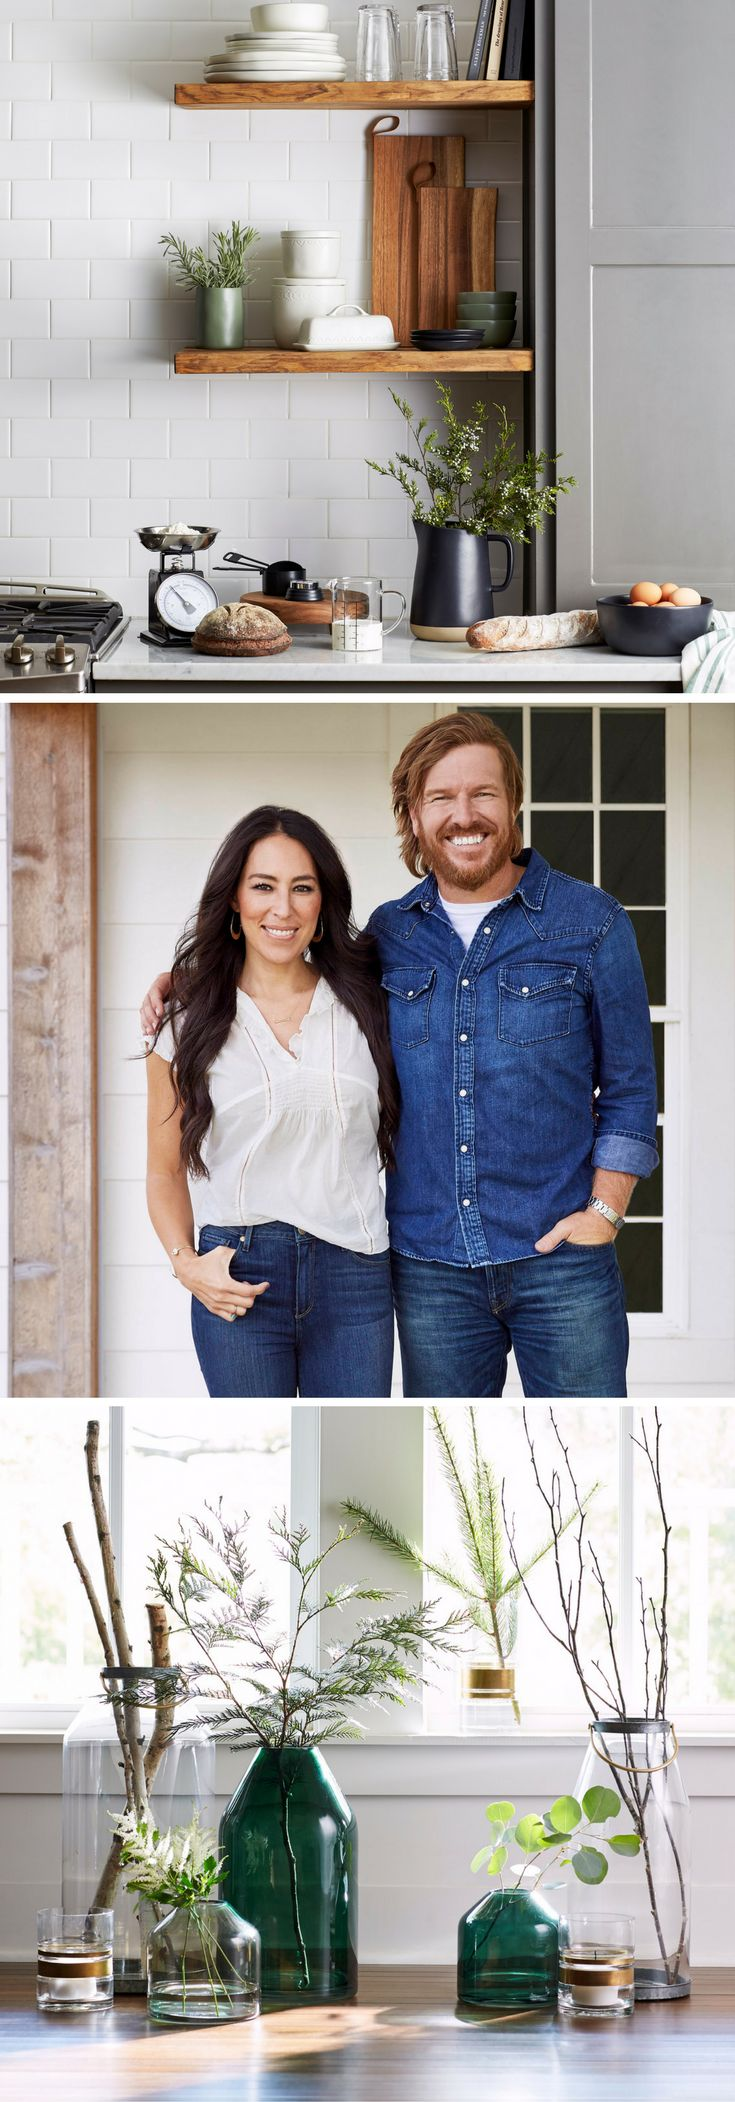 best 25 joanna gaines kitchen ideas on pinterest grey cabinets joanna gaines and neutral. Black Bedroom Furniture Sets. Home Design Ideas